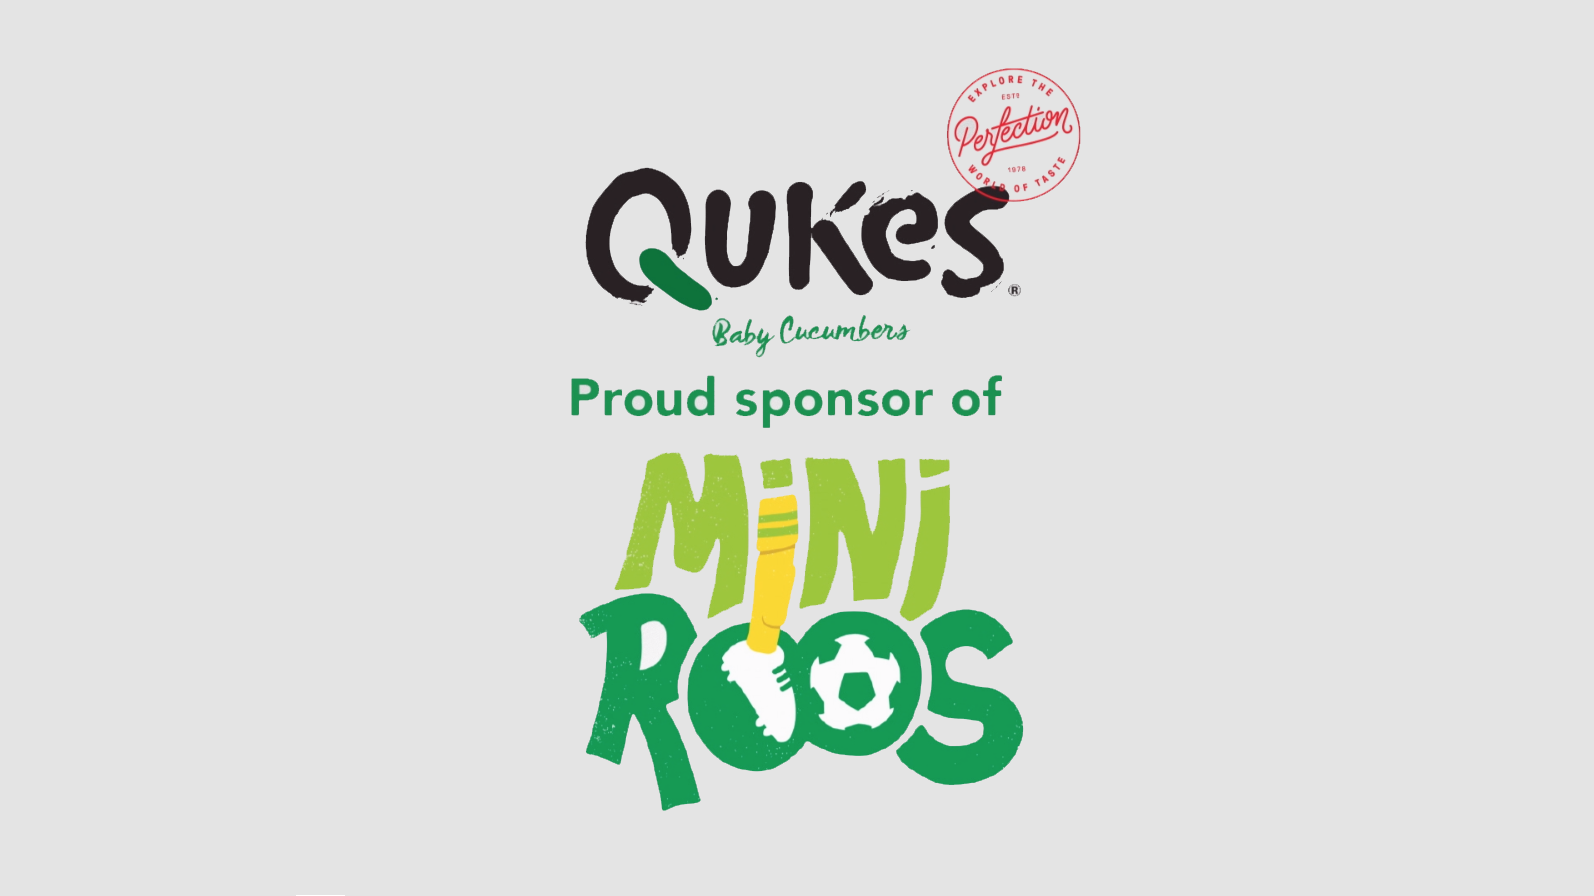 Football Australia secure fresh MiniRoos partnership with Qukes®